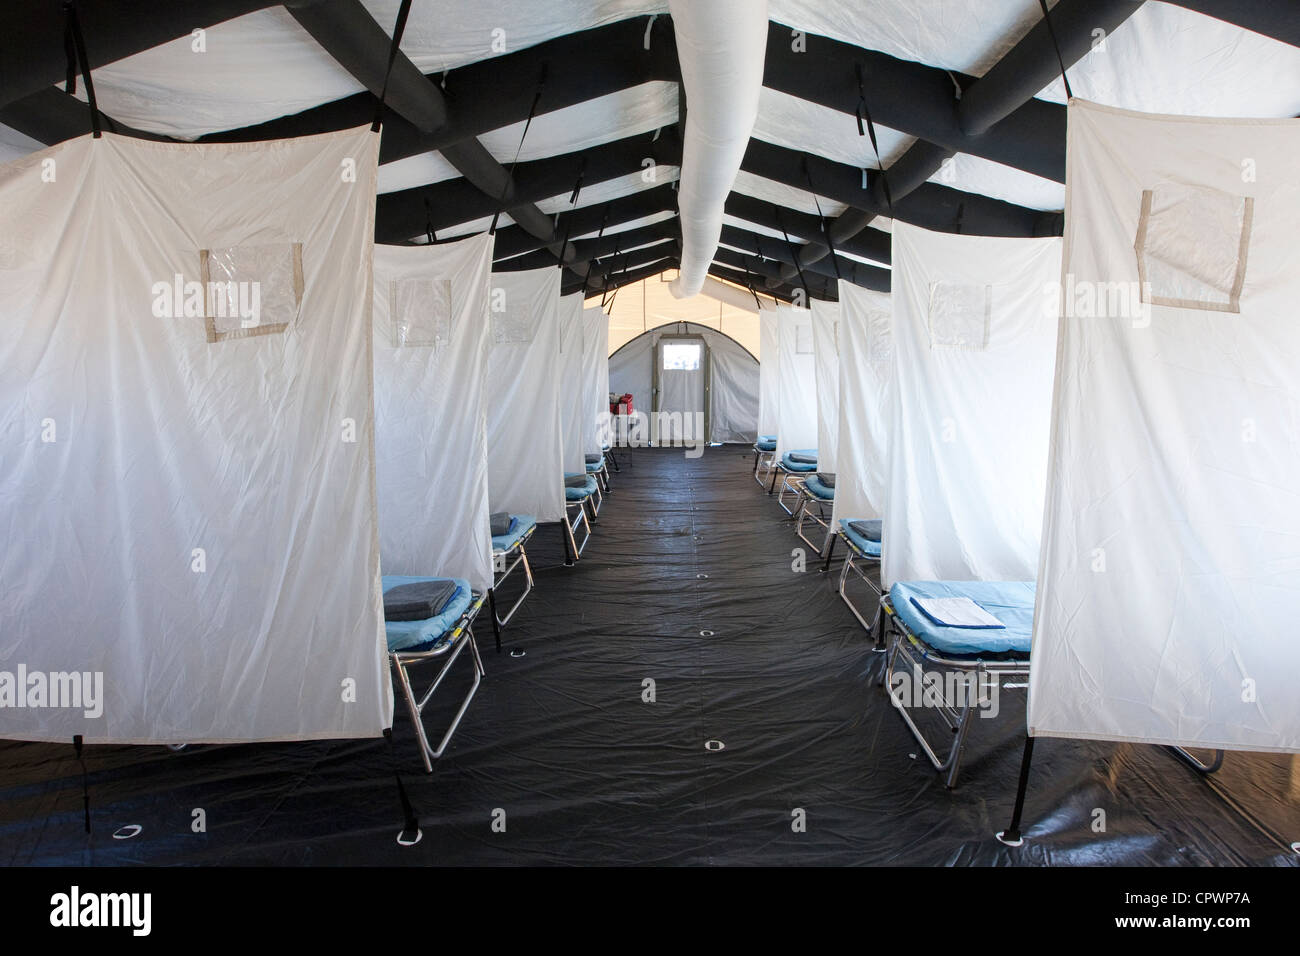 Emergency Medical Task Force temporary medical beds during training exercise for disaster - Stock Image